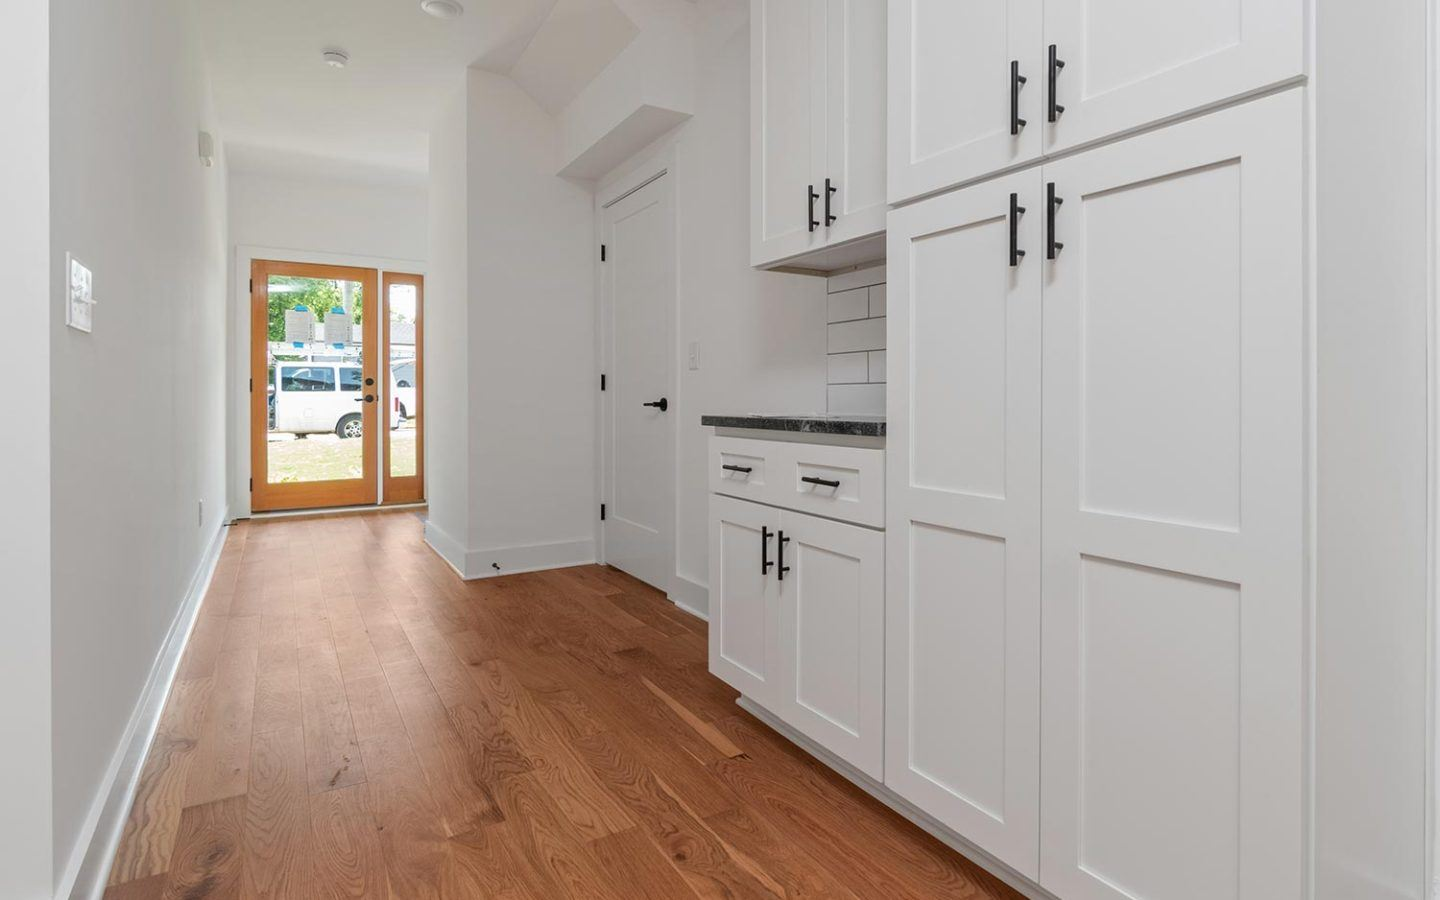 freshly painted kitchen cabinets in long bright hallway